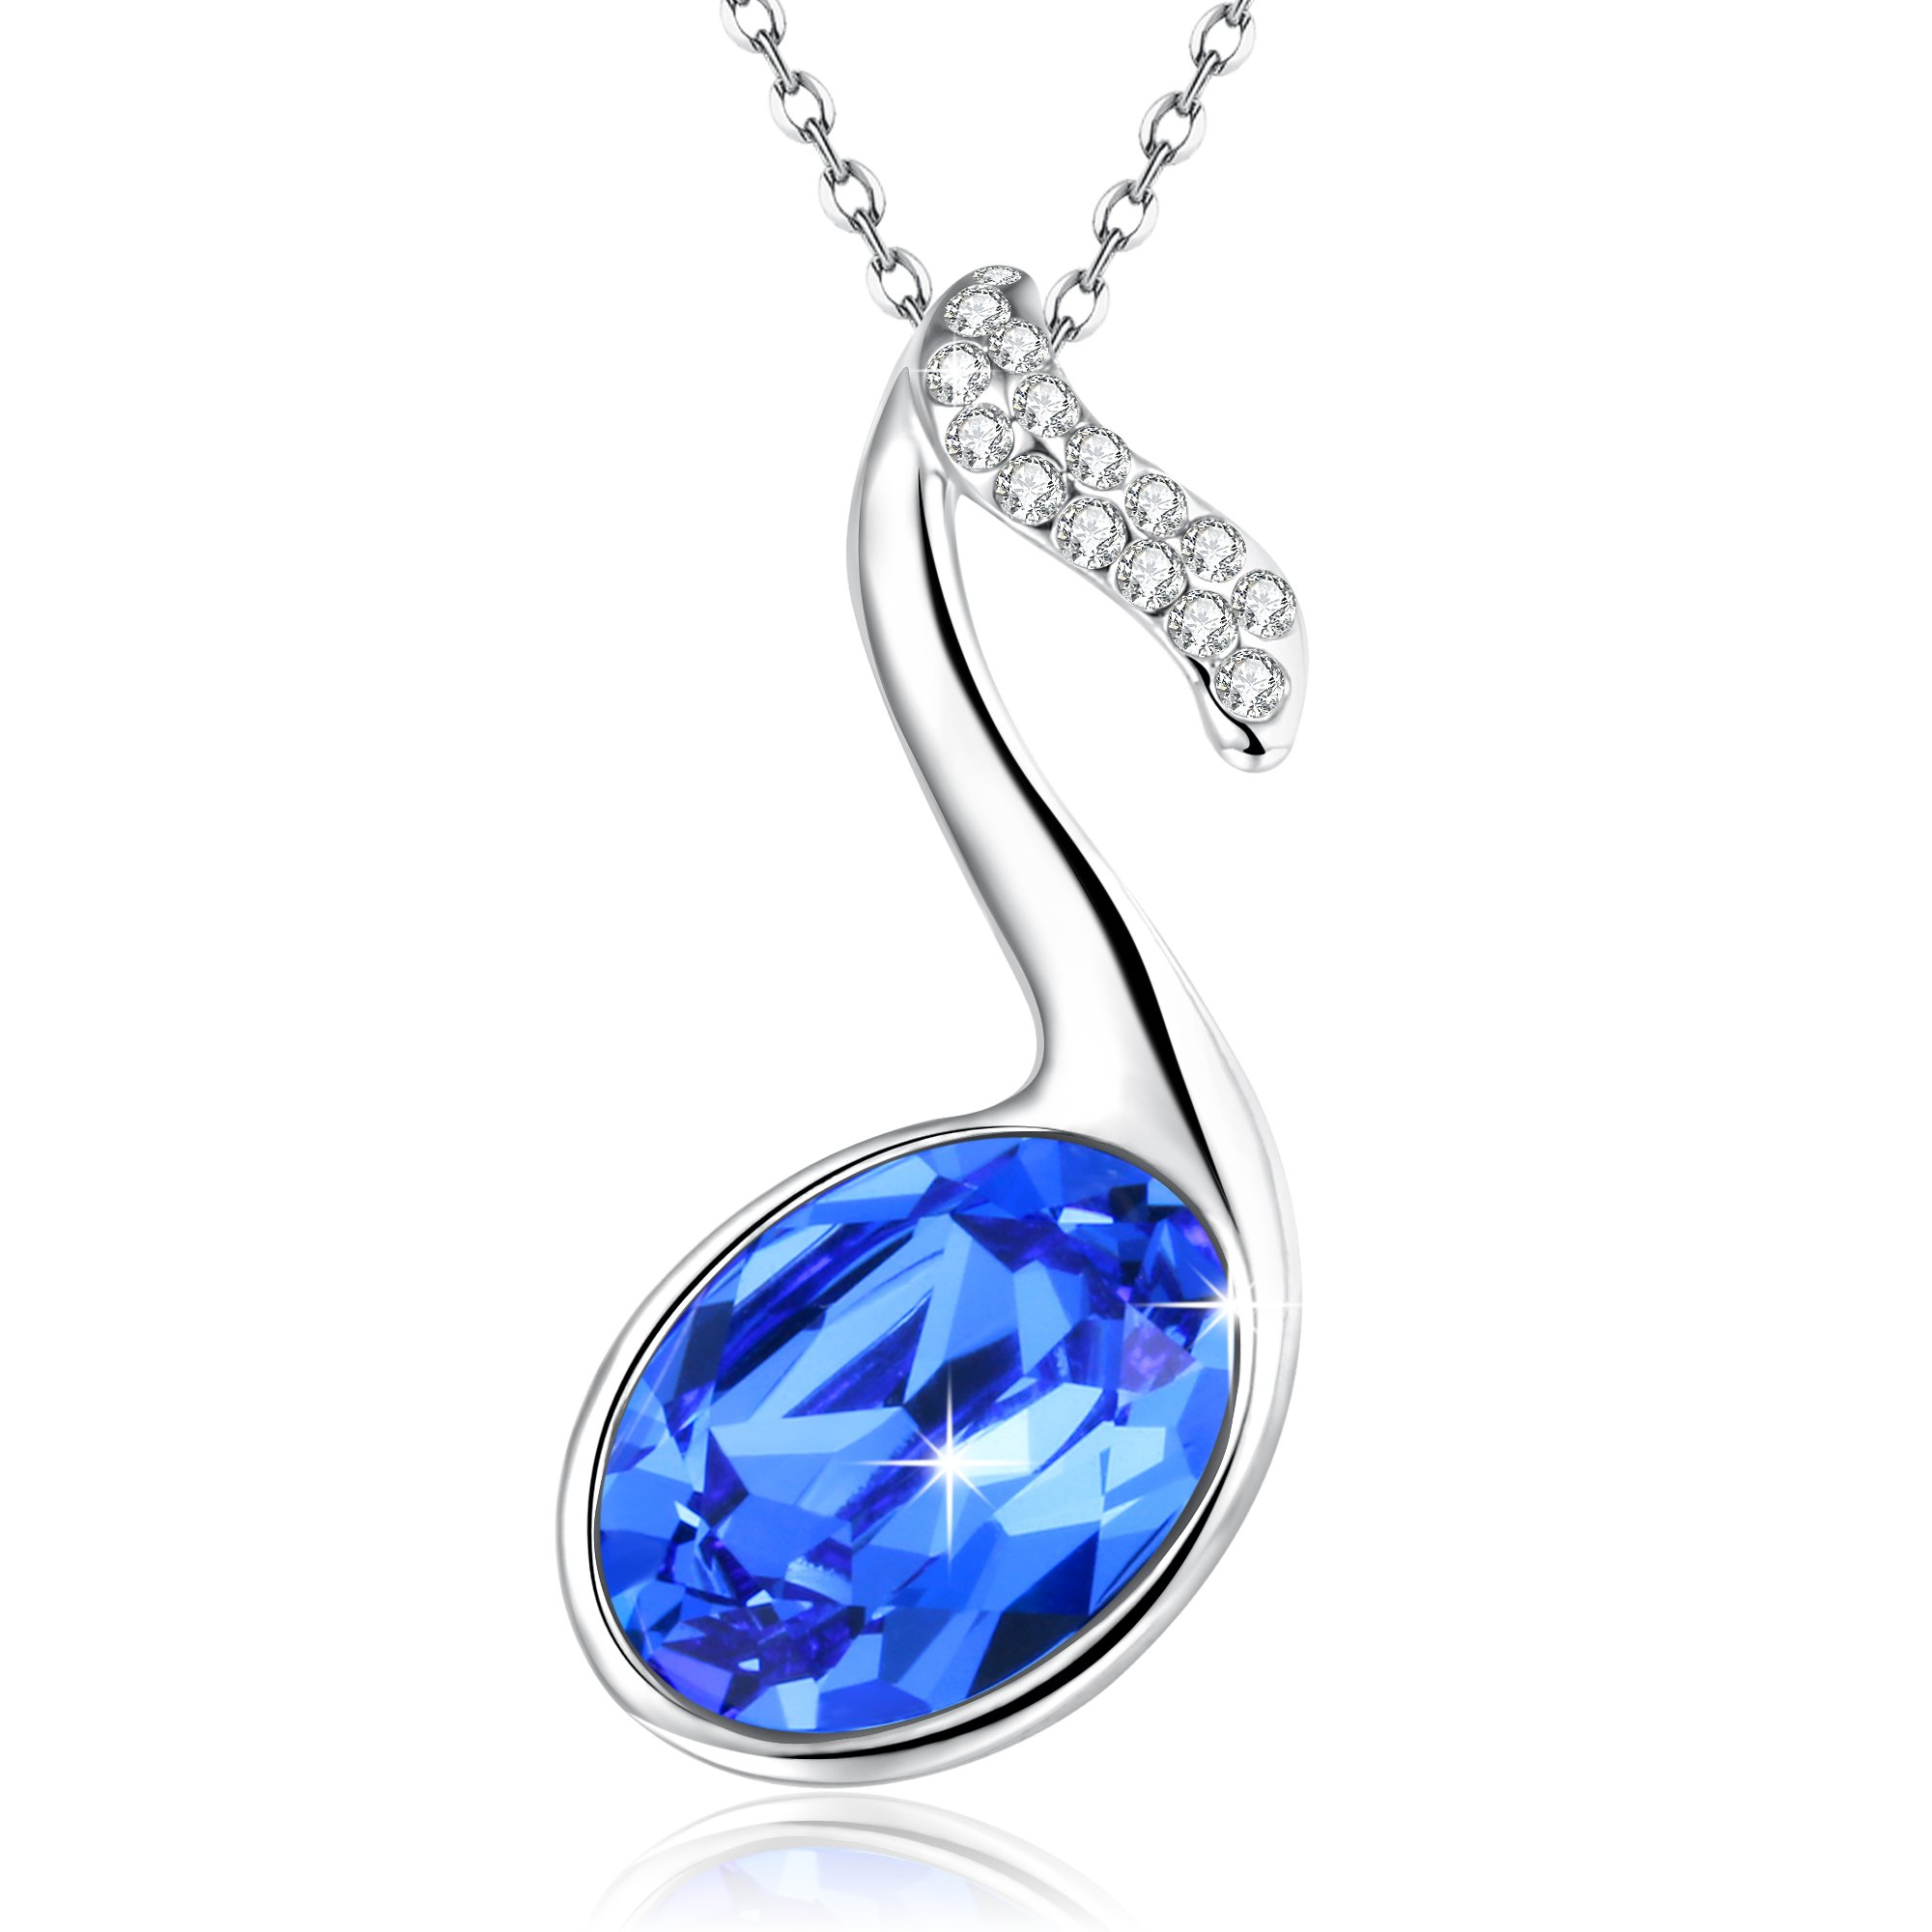 Angelady Angealdy Summer Waltz Music Note Pendant Necklace,Blue Crystal from Swarovski,Gift for women birthday